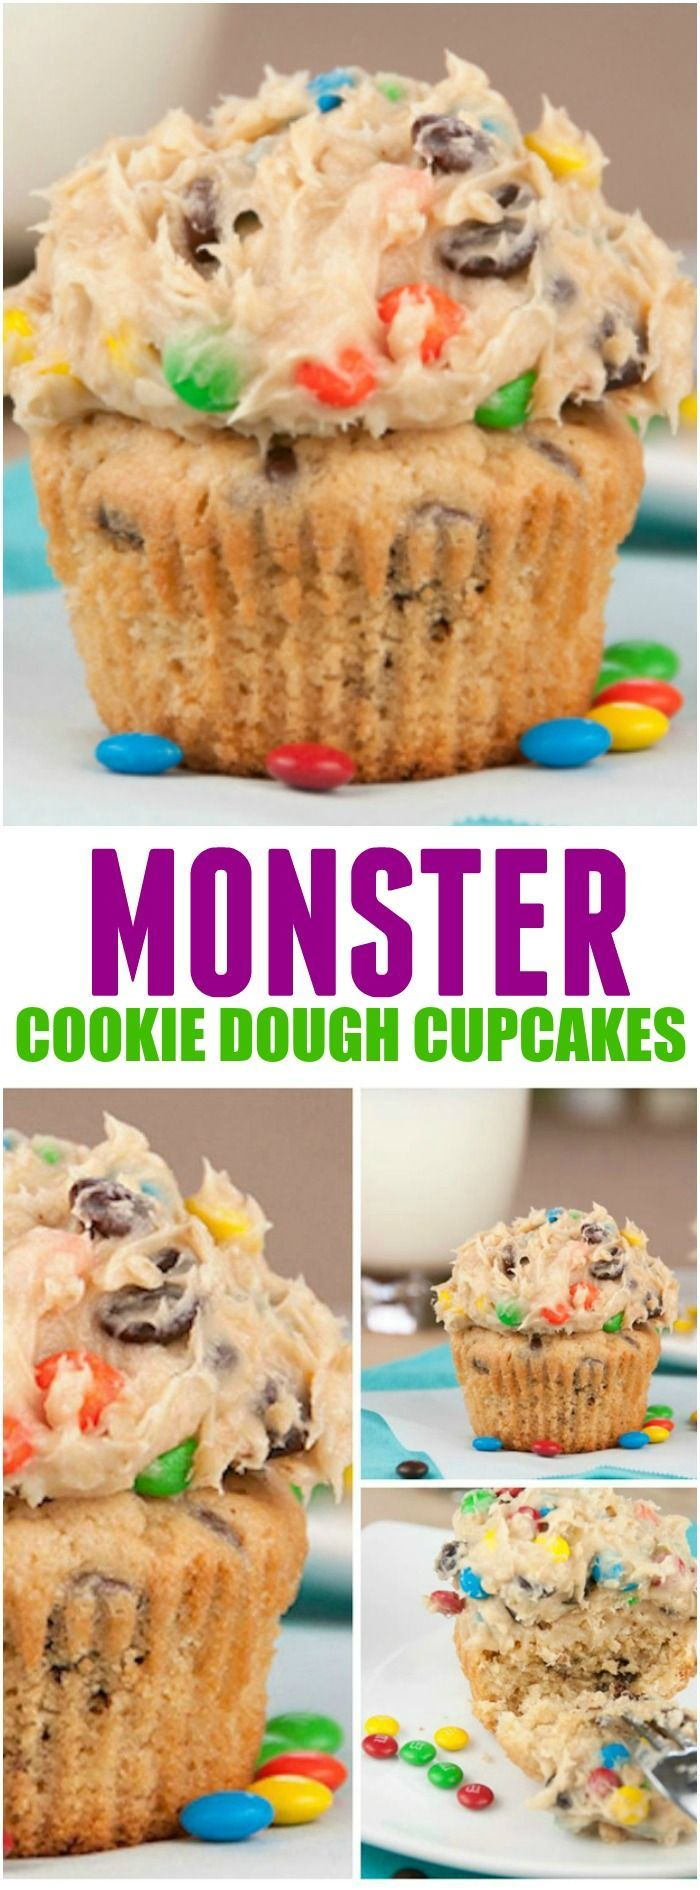 These Monster Cookie Dough Cupcakes from Wishes and Dishes are rich peanut butter cupcakes topped with a sweet and loaded cookie dough frosting that is packed full with peanut butter, chocolate chips and M&M candy! || Featured on http://www.thebestblogrecipes.com